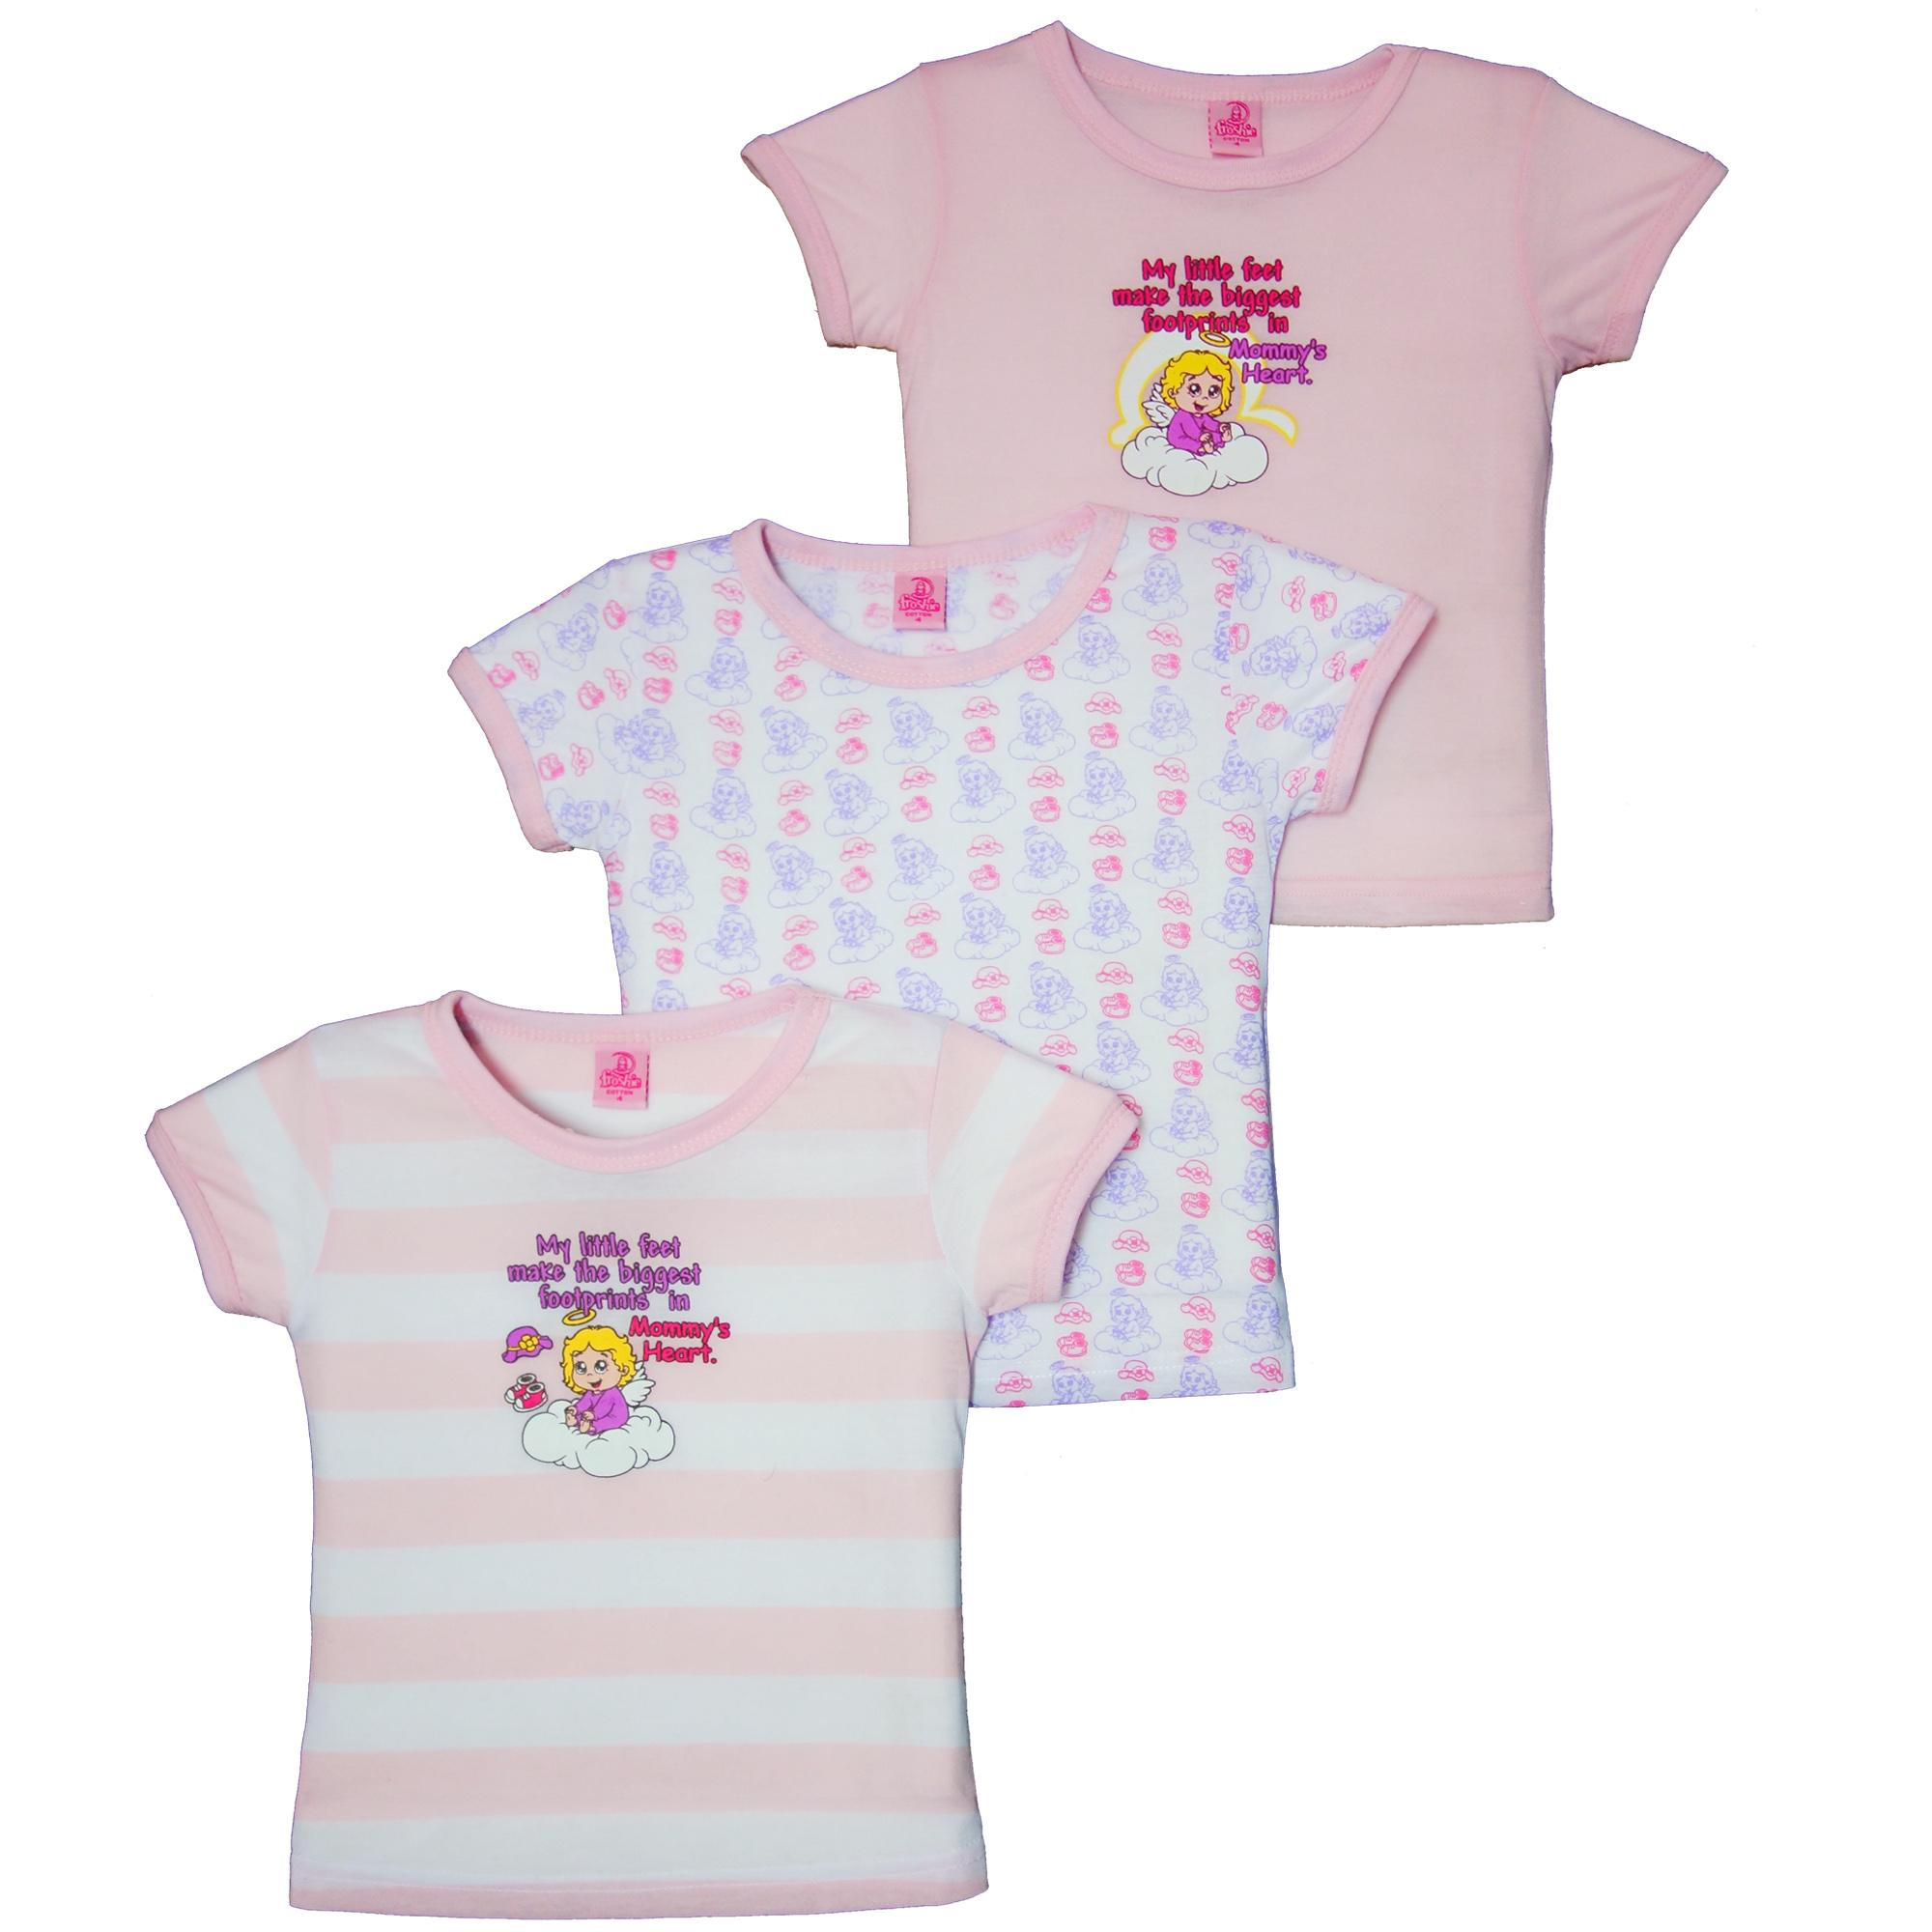 e9529c9da Young Girls Clothing for sale - Baby Clothing for Girls Online Deals ...